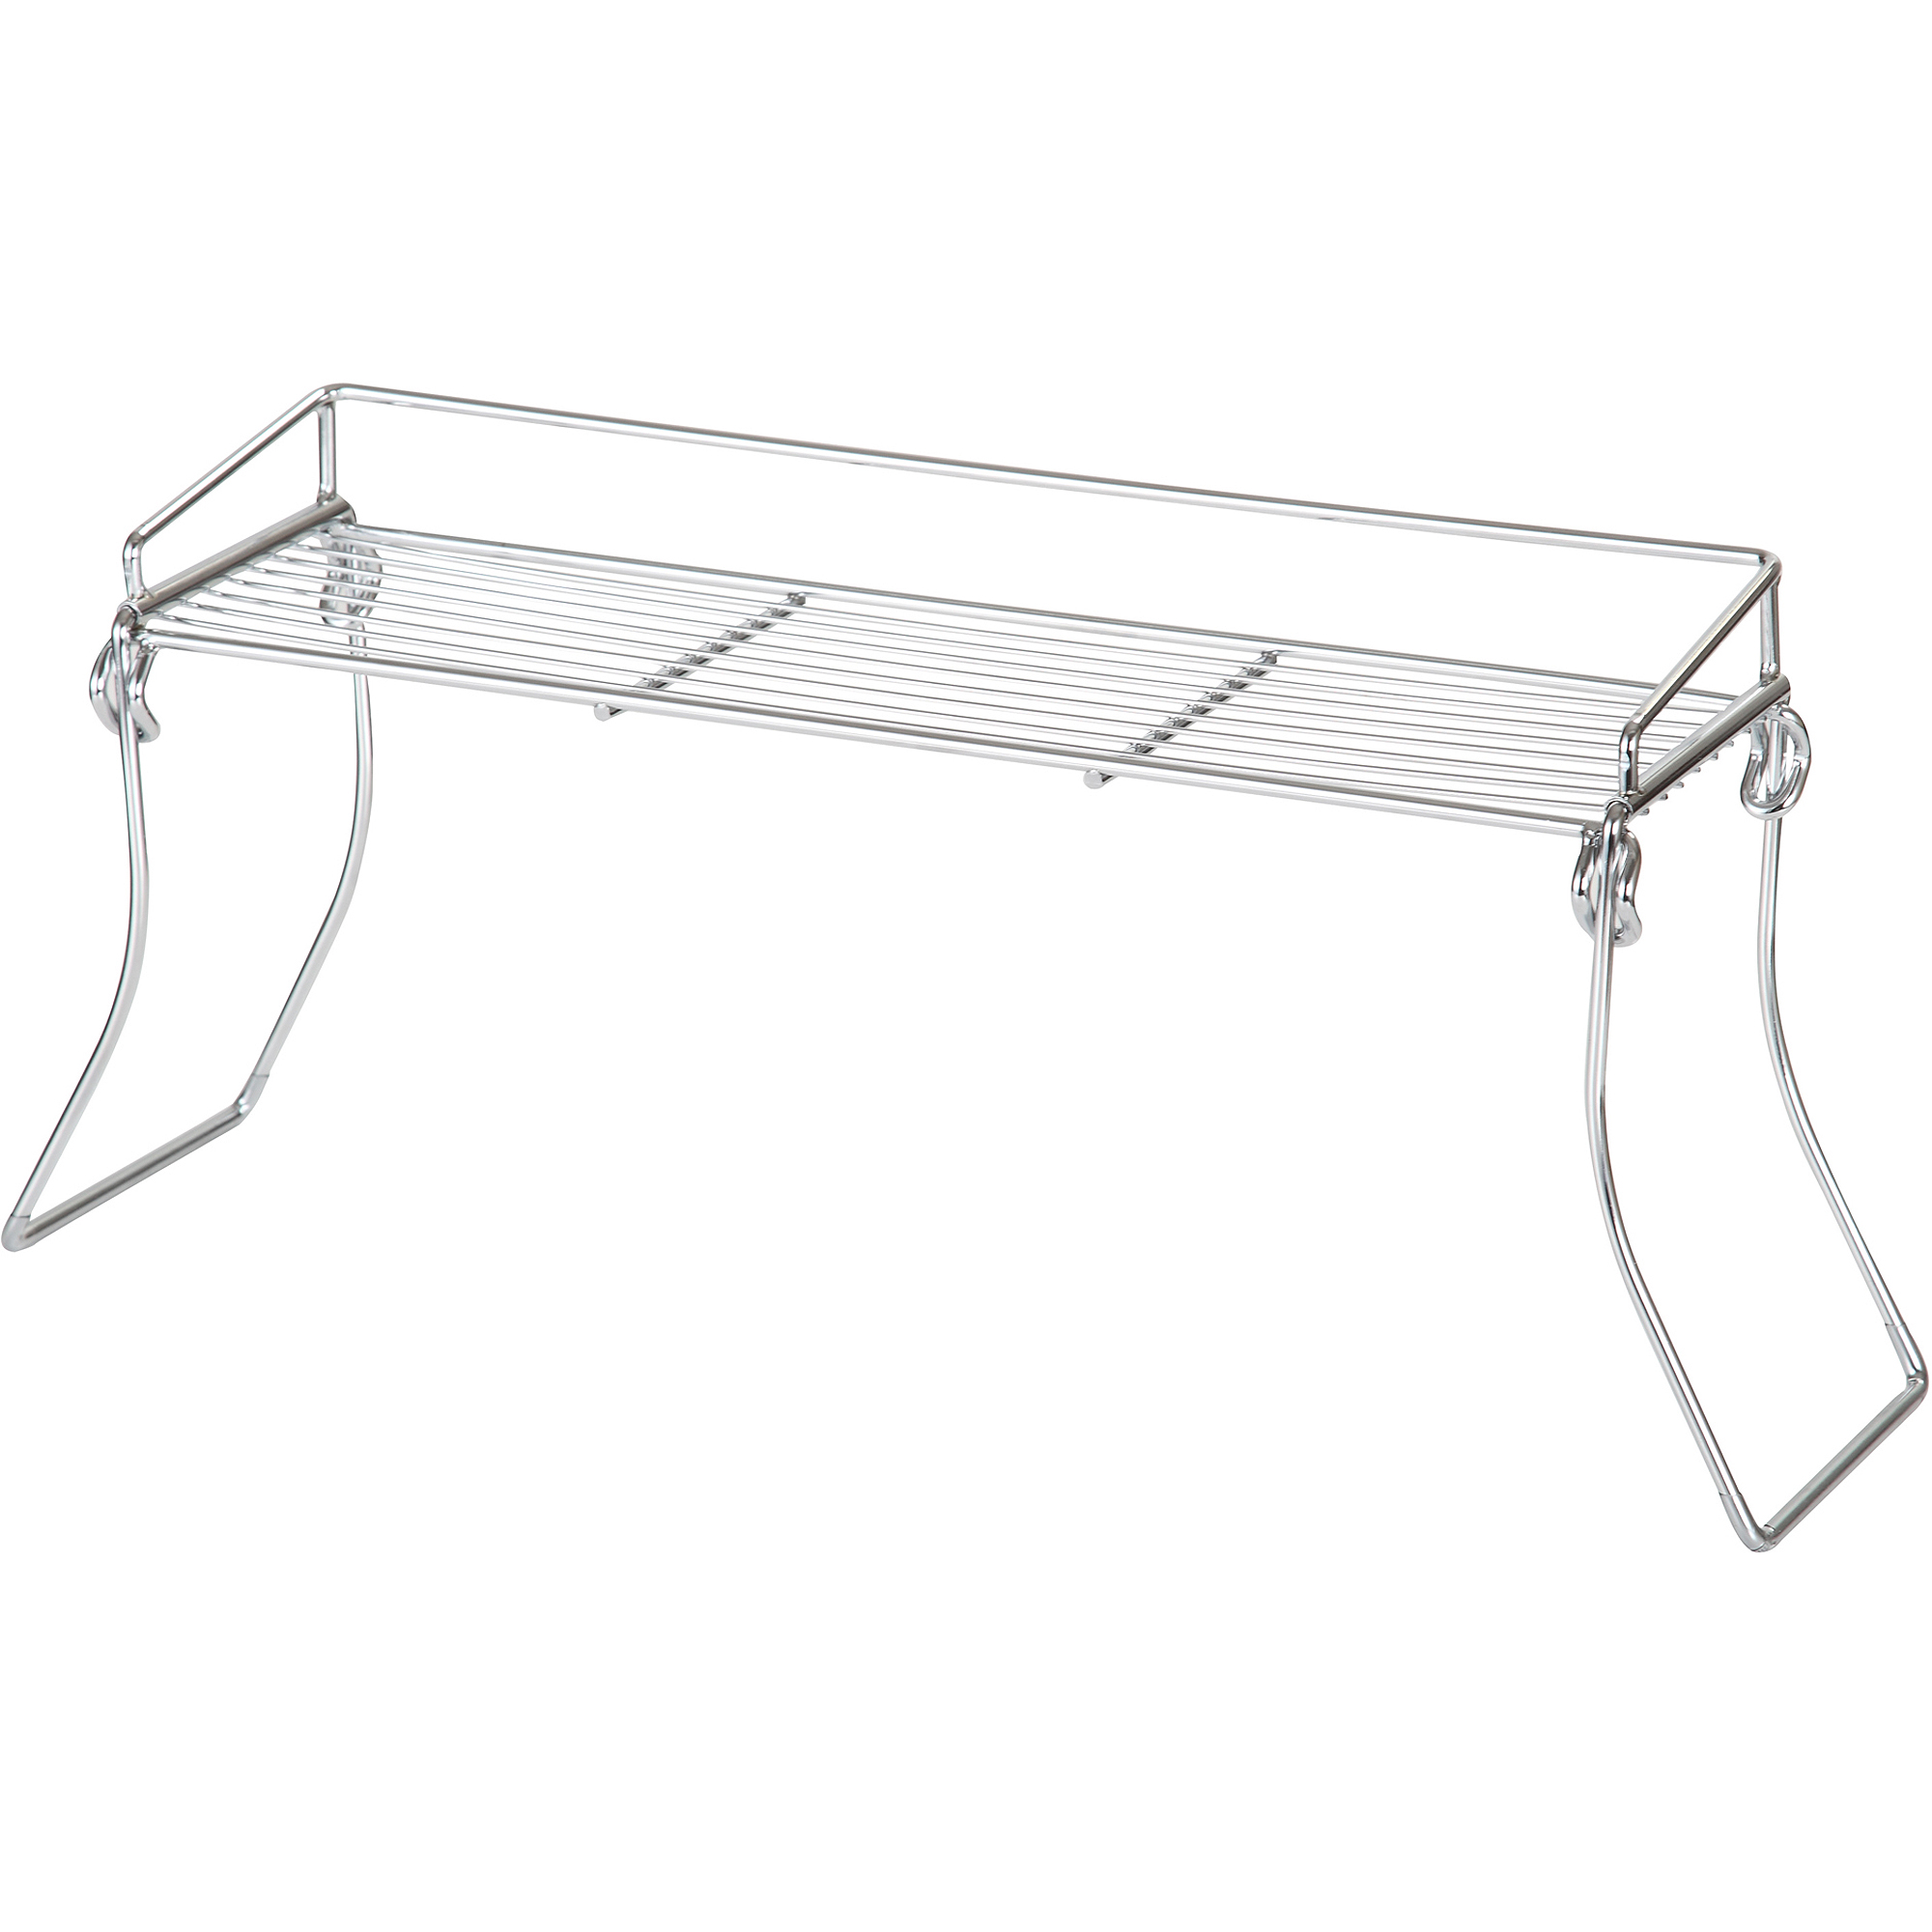 Kitchen Details cabinet Helper Shelf, Multiple Colors - Walmart.com